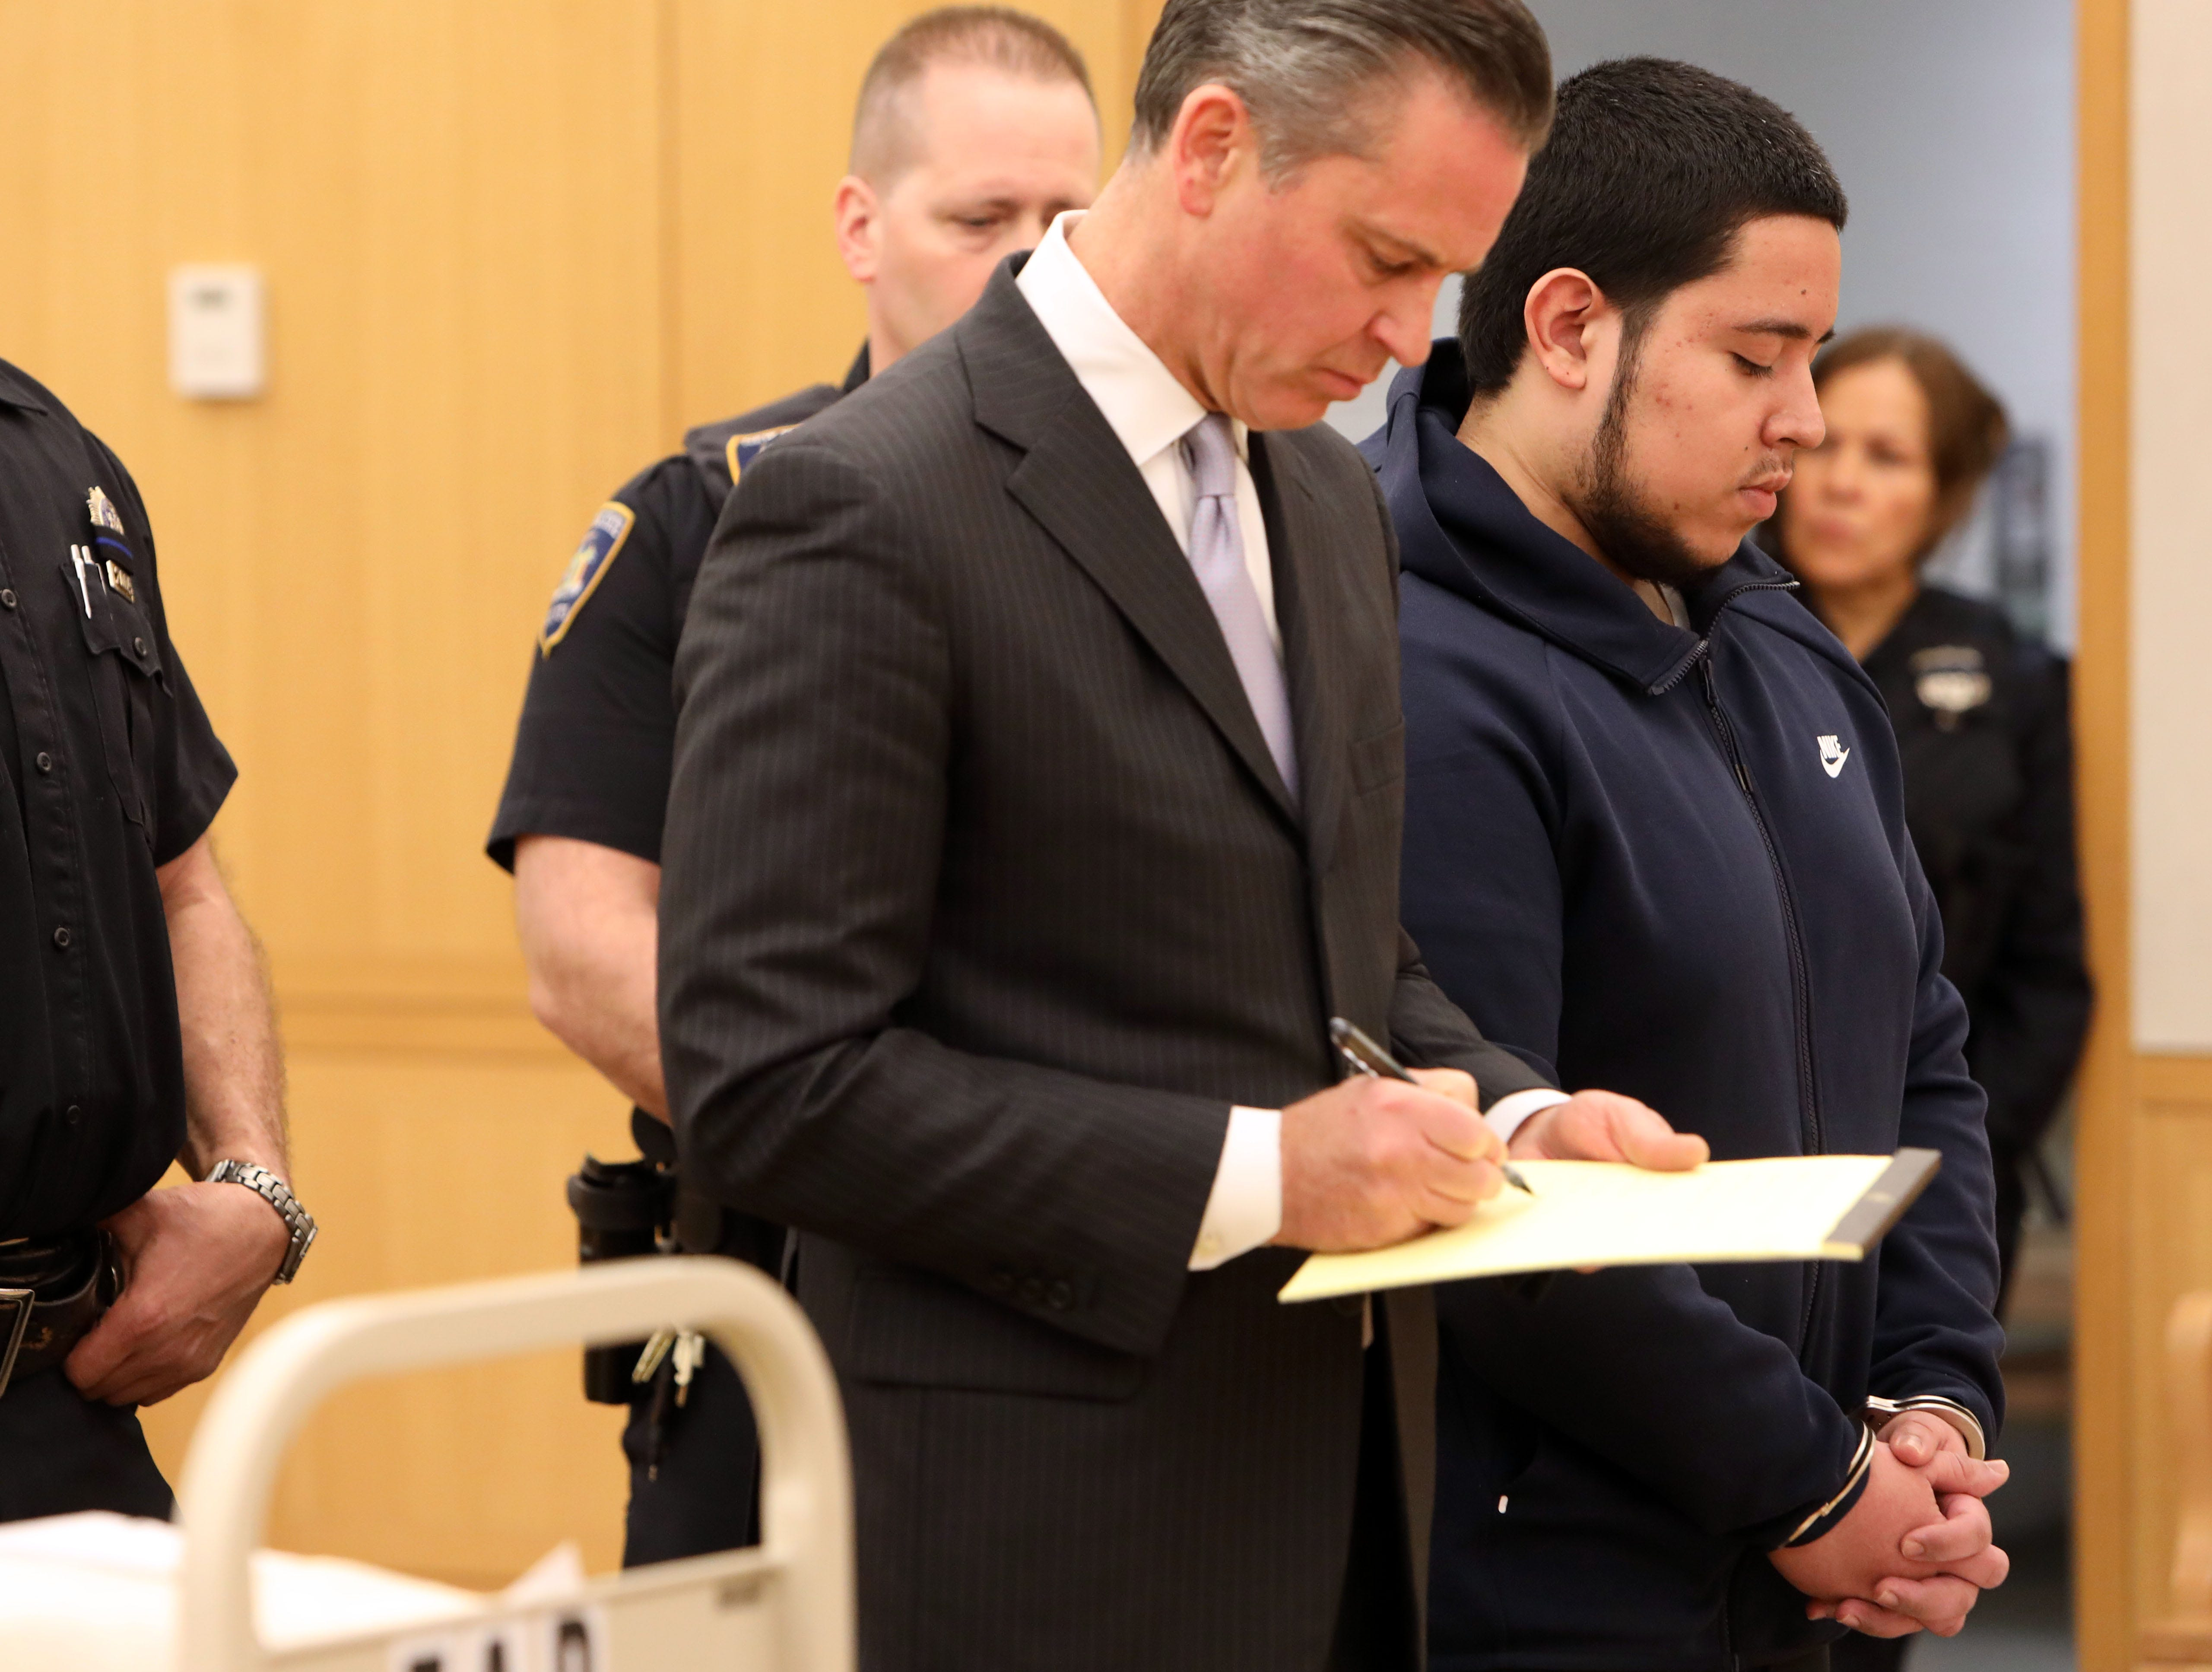 Frank Valencia, a 19-year-old New Rochelle resident, during his sentencing in Westchester County Court on Feb. 8, 2019, to 24 years to life in prison for shooting Yonkers police officer Kayla Maher in 2017.